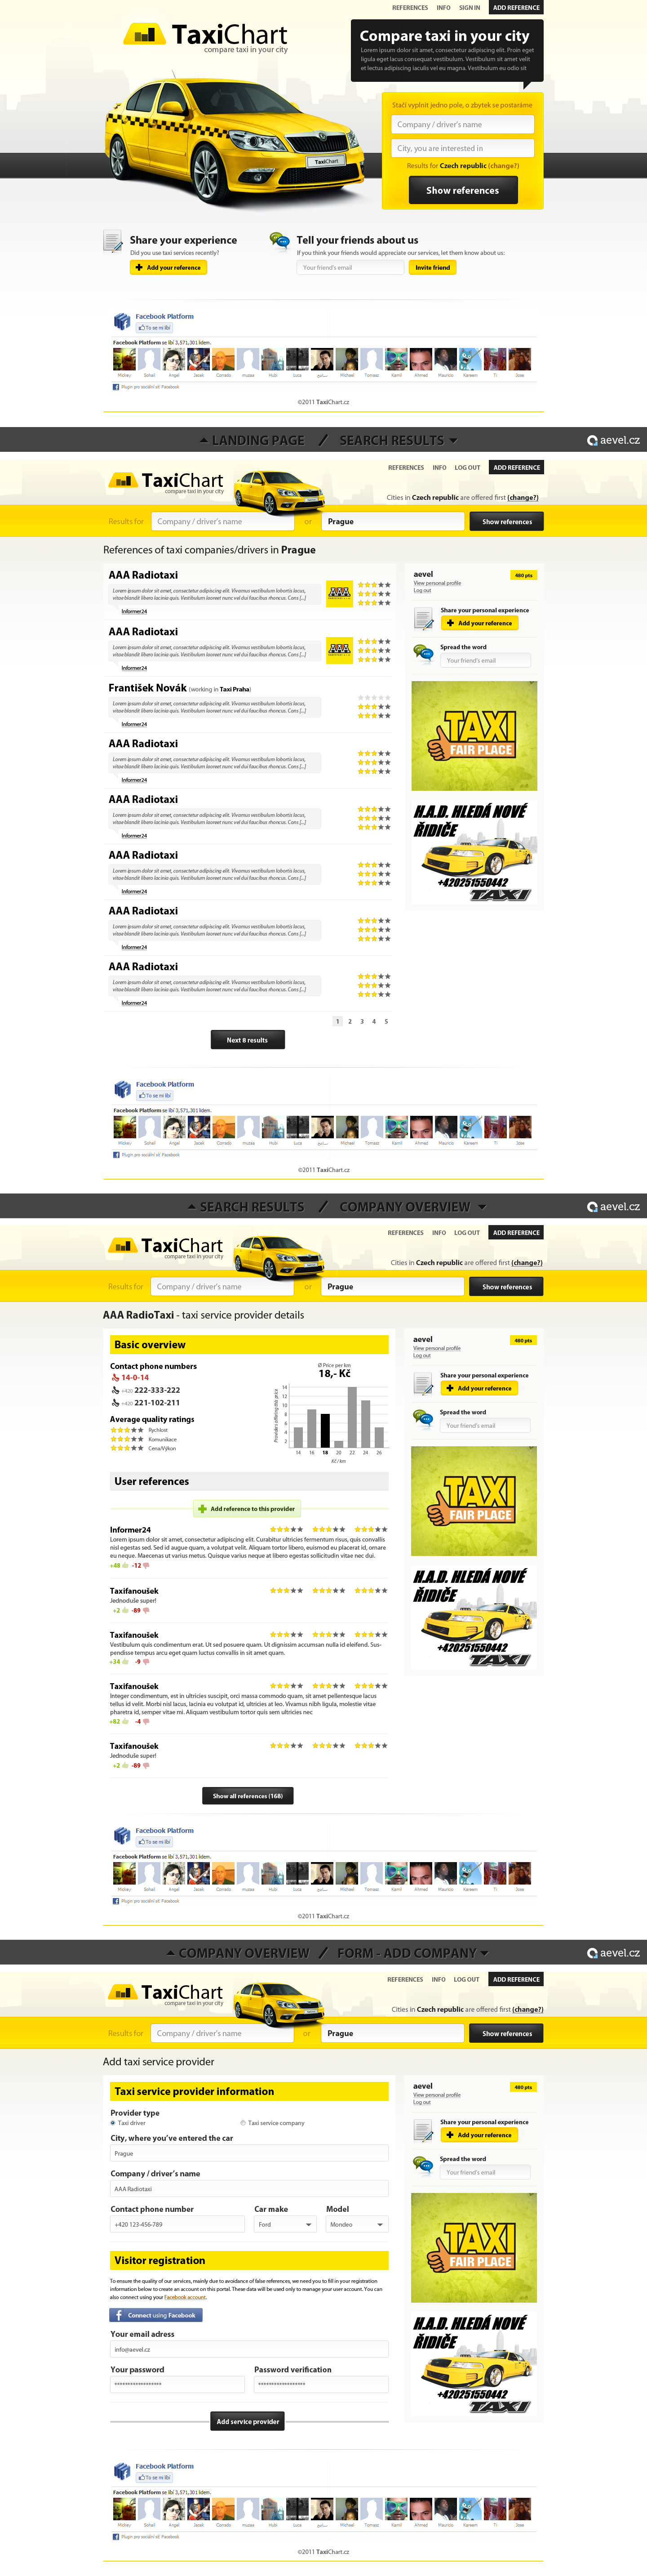 taxi comparison website by aevel